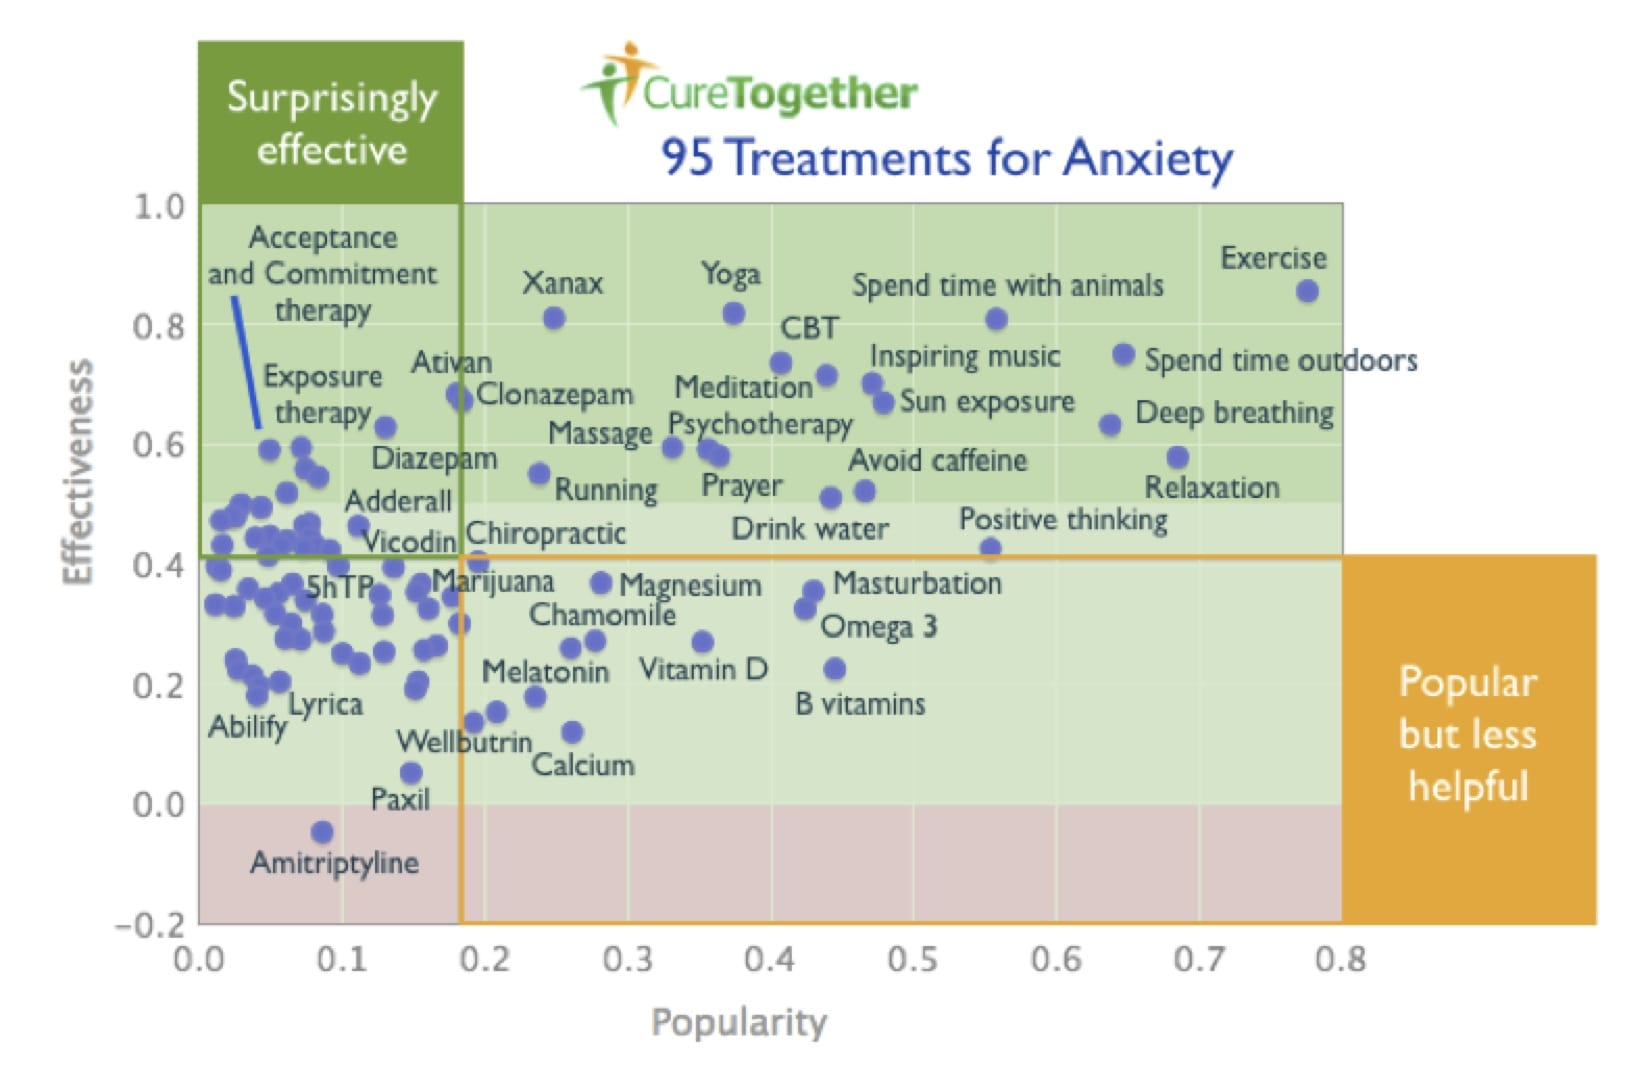 What Patients Say Works for Anxiety - 23andMe Blog